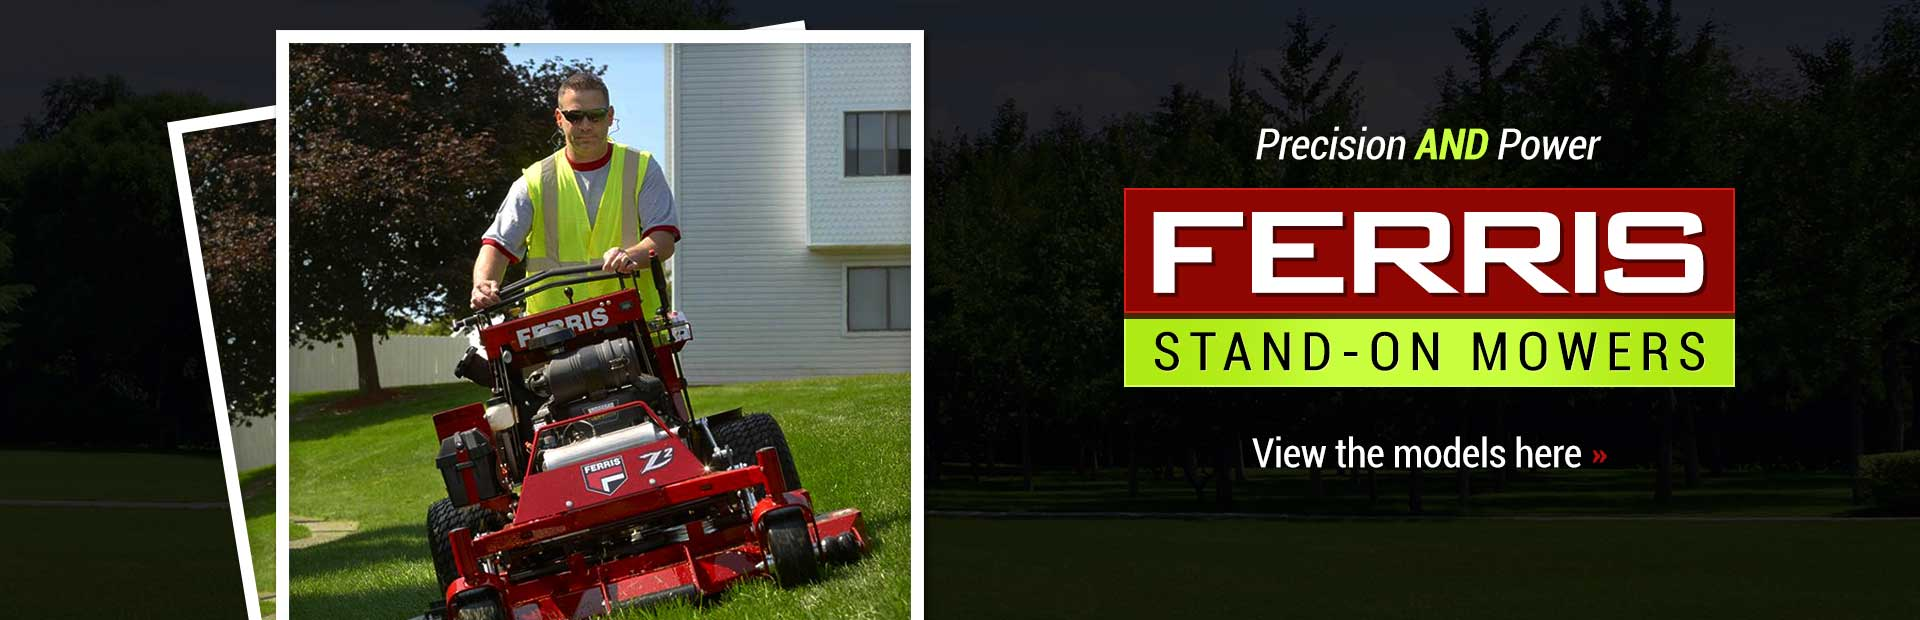 Ferris Stand-On Mowers: Click here to view the models.